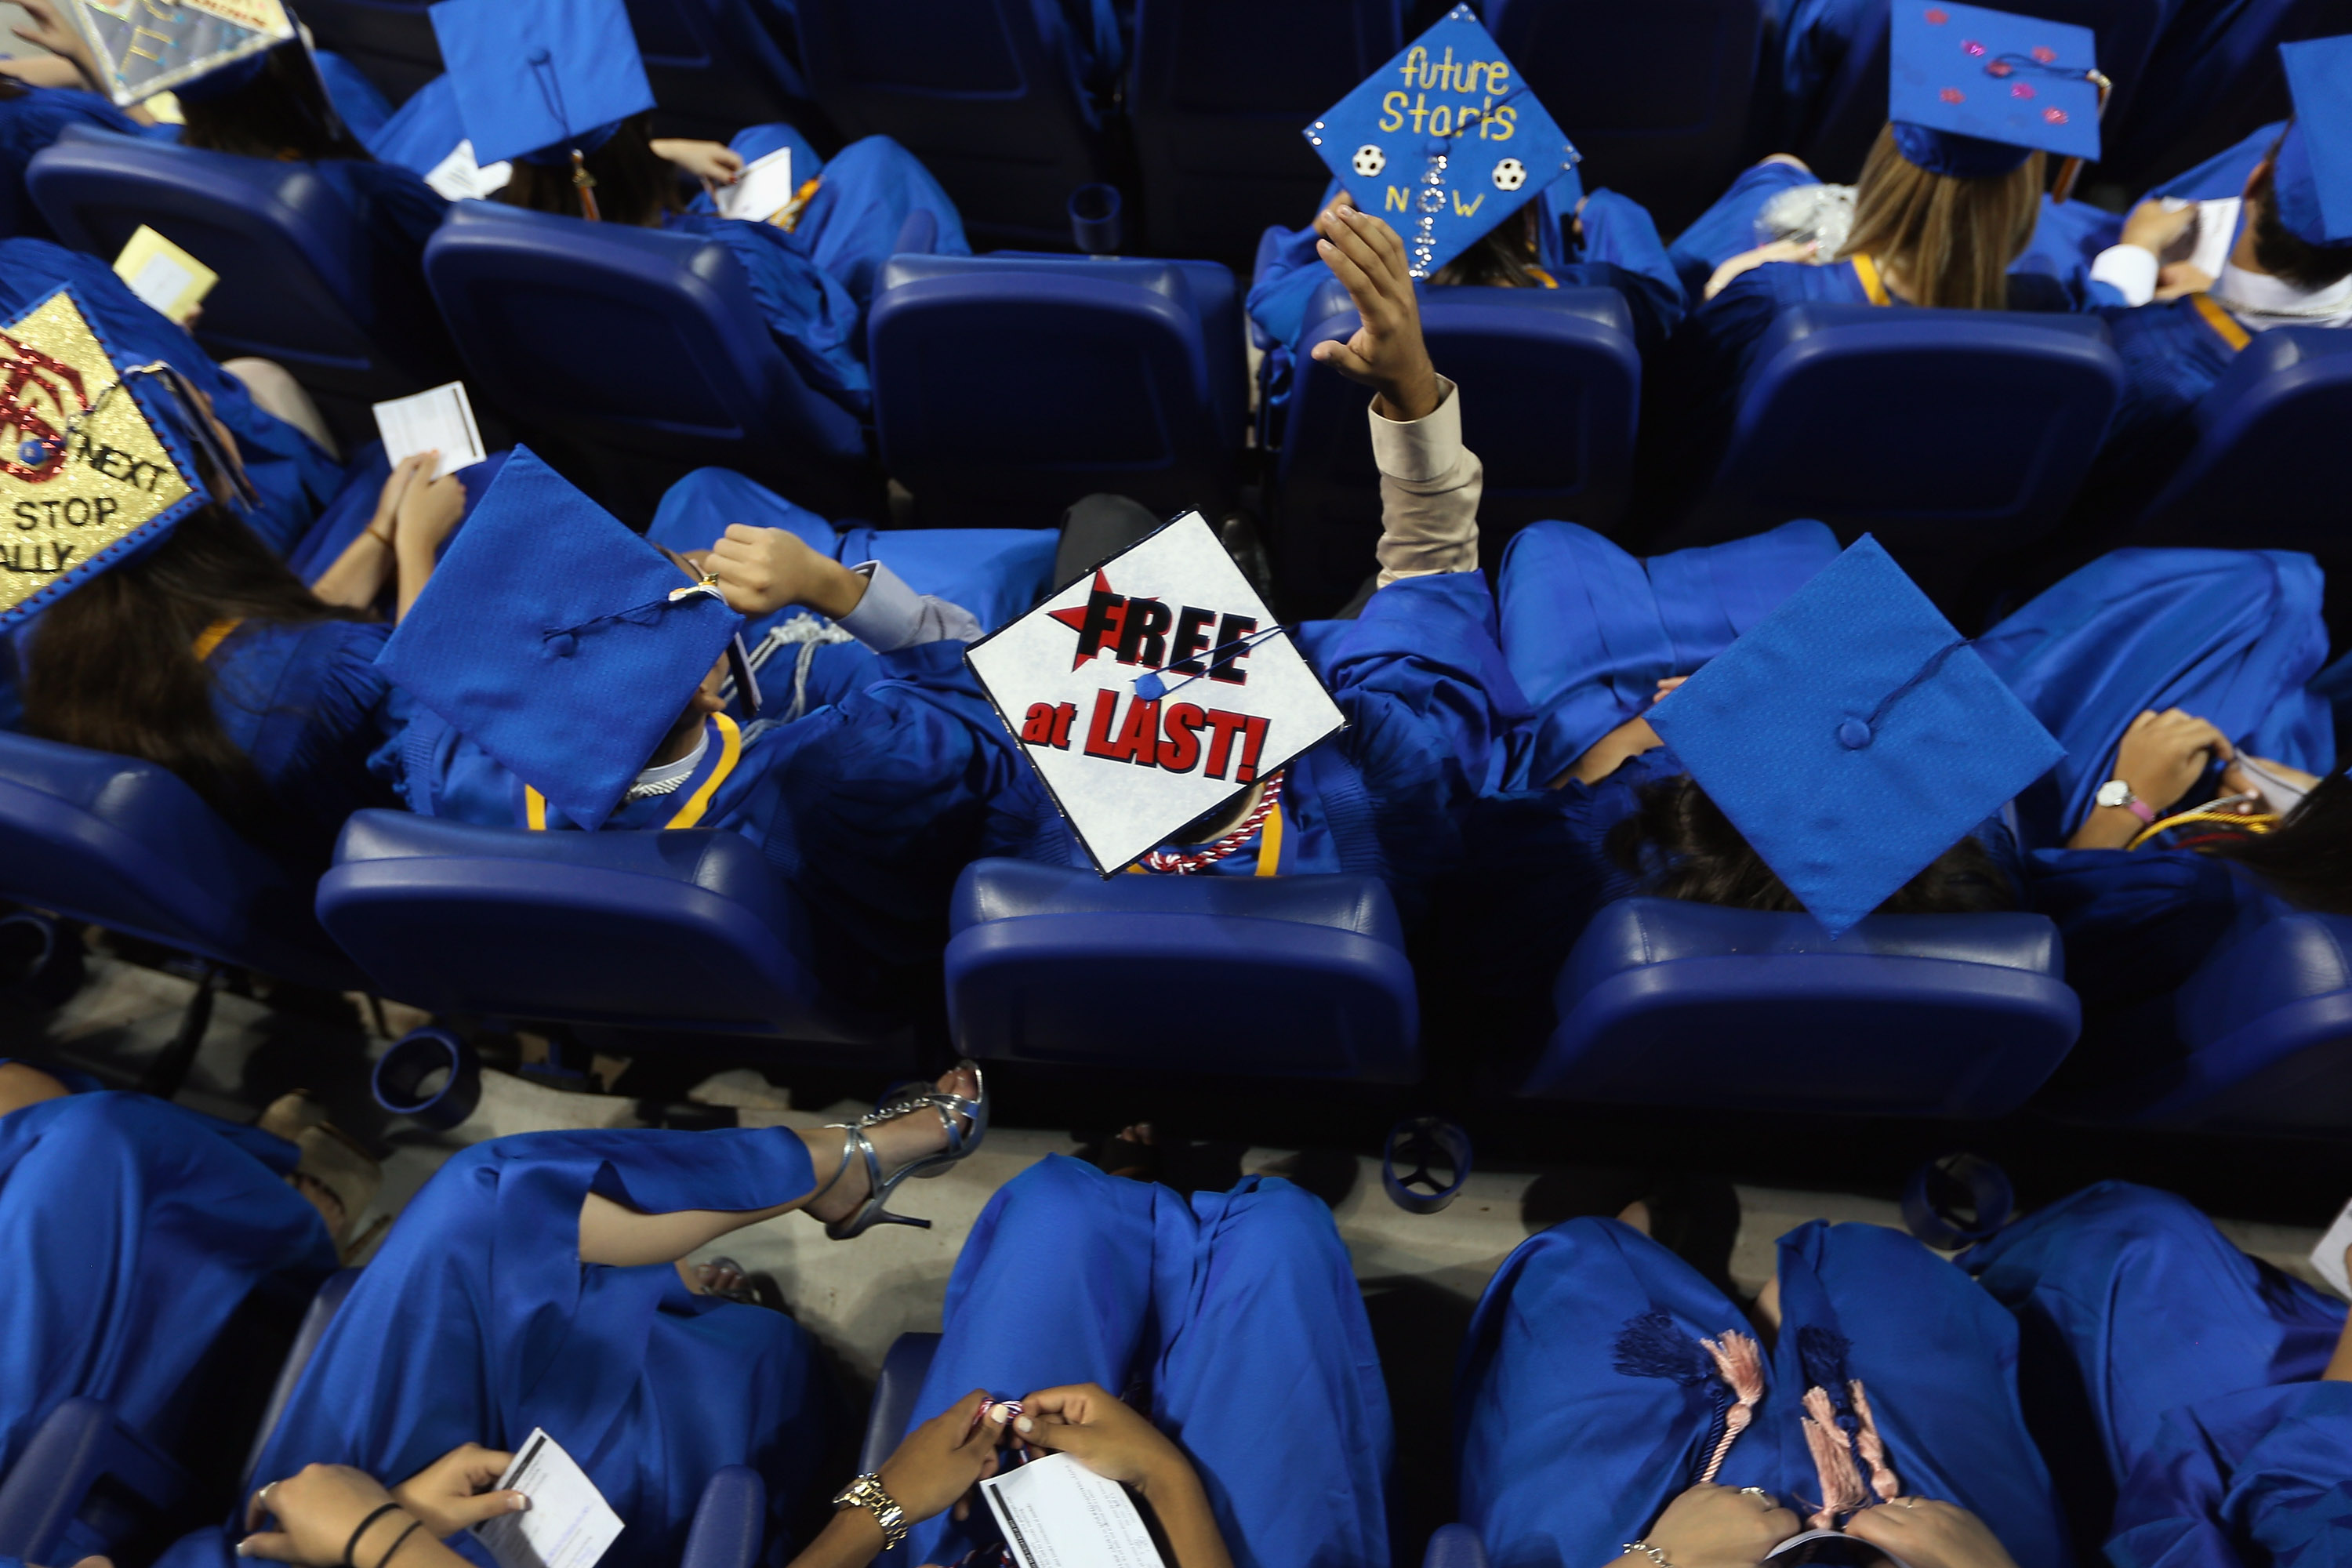 Stay in or drop out? The entrepreneur's education fiasco